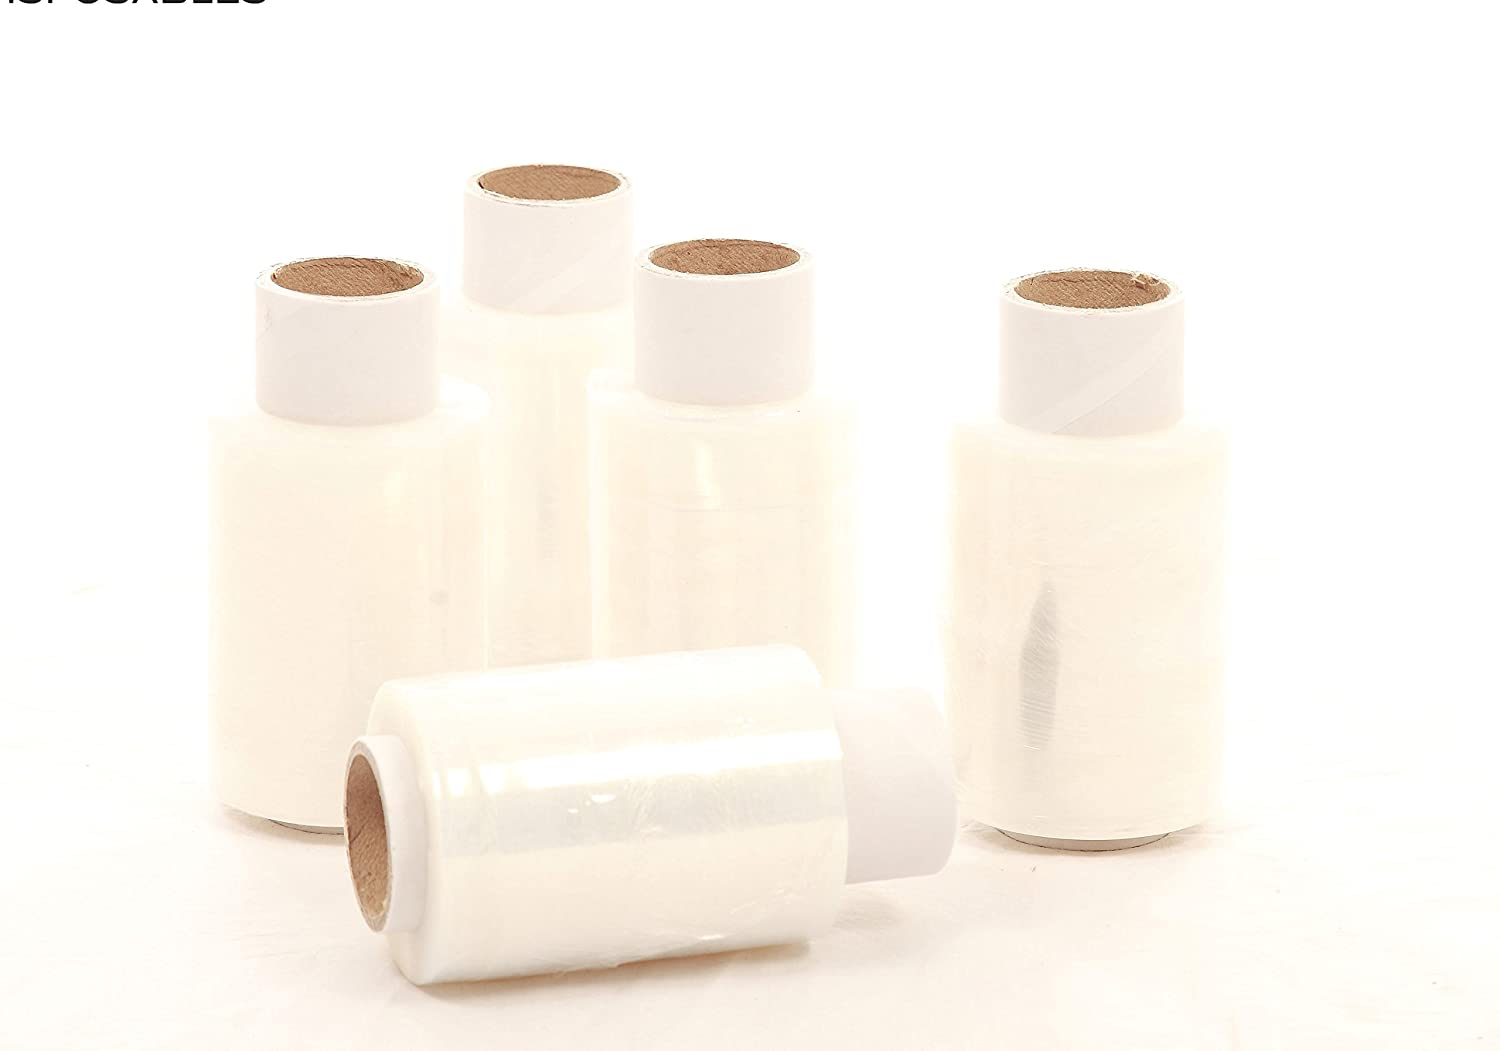 45 x ROLLS MINI STRETCH SHRINK FILM HANDY WRAP STRONG PACKAGING AND DISPOSABLES